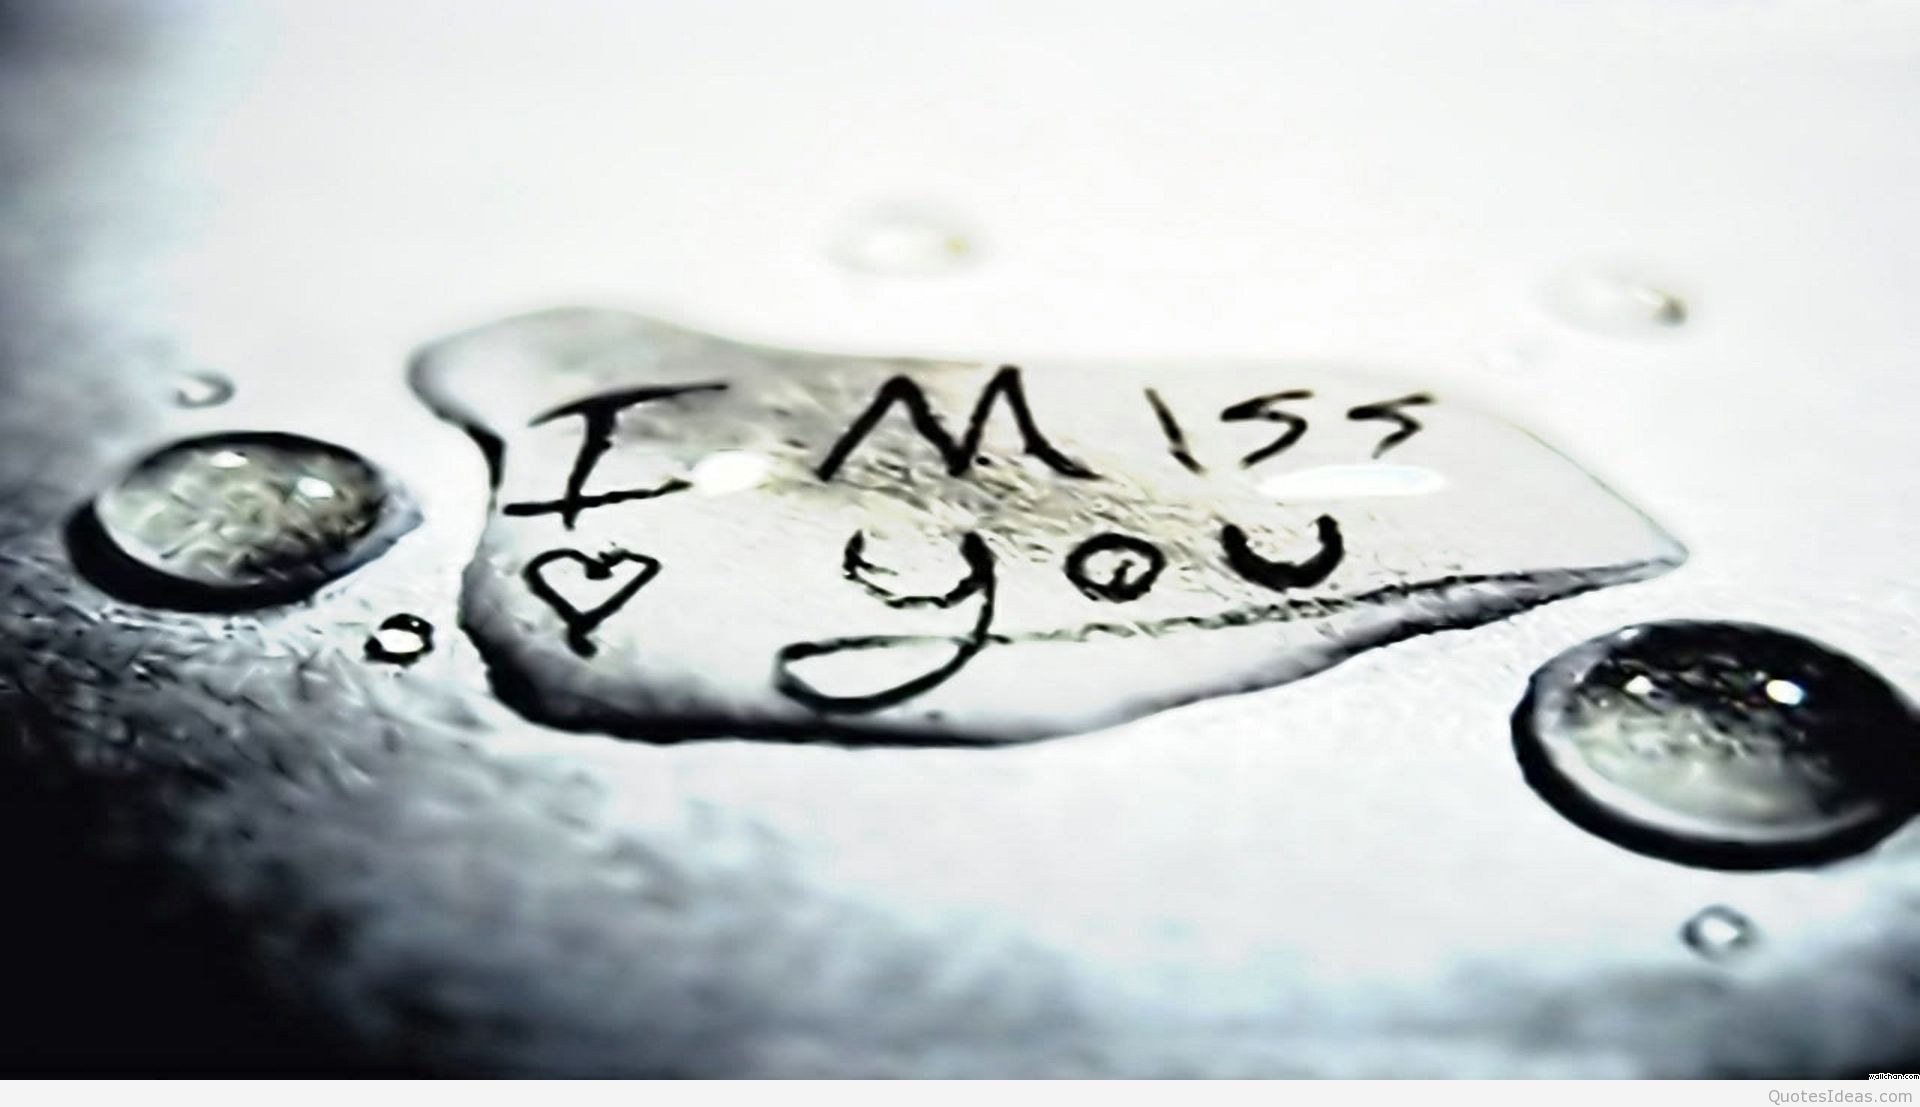 I Miss You Wallpaper Images